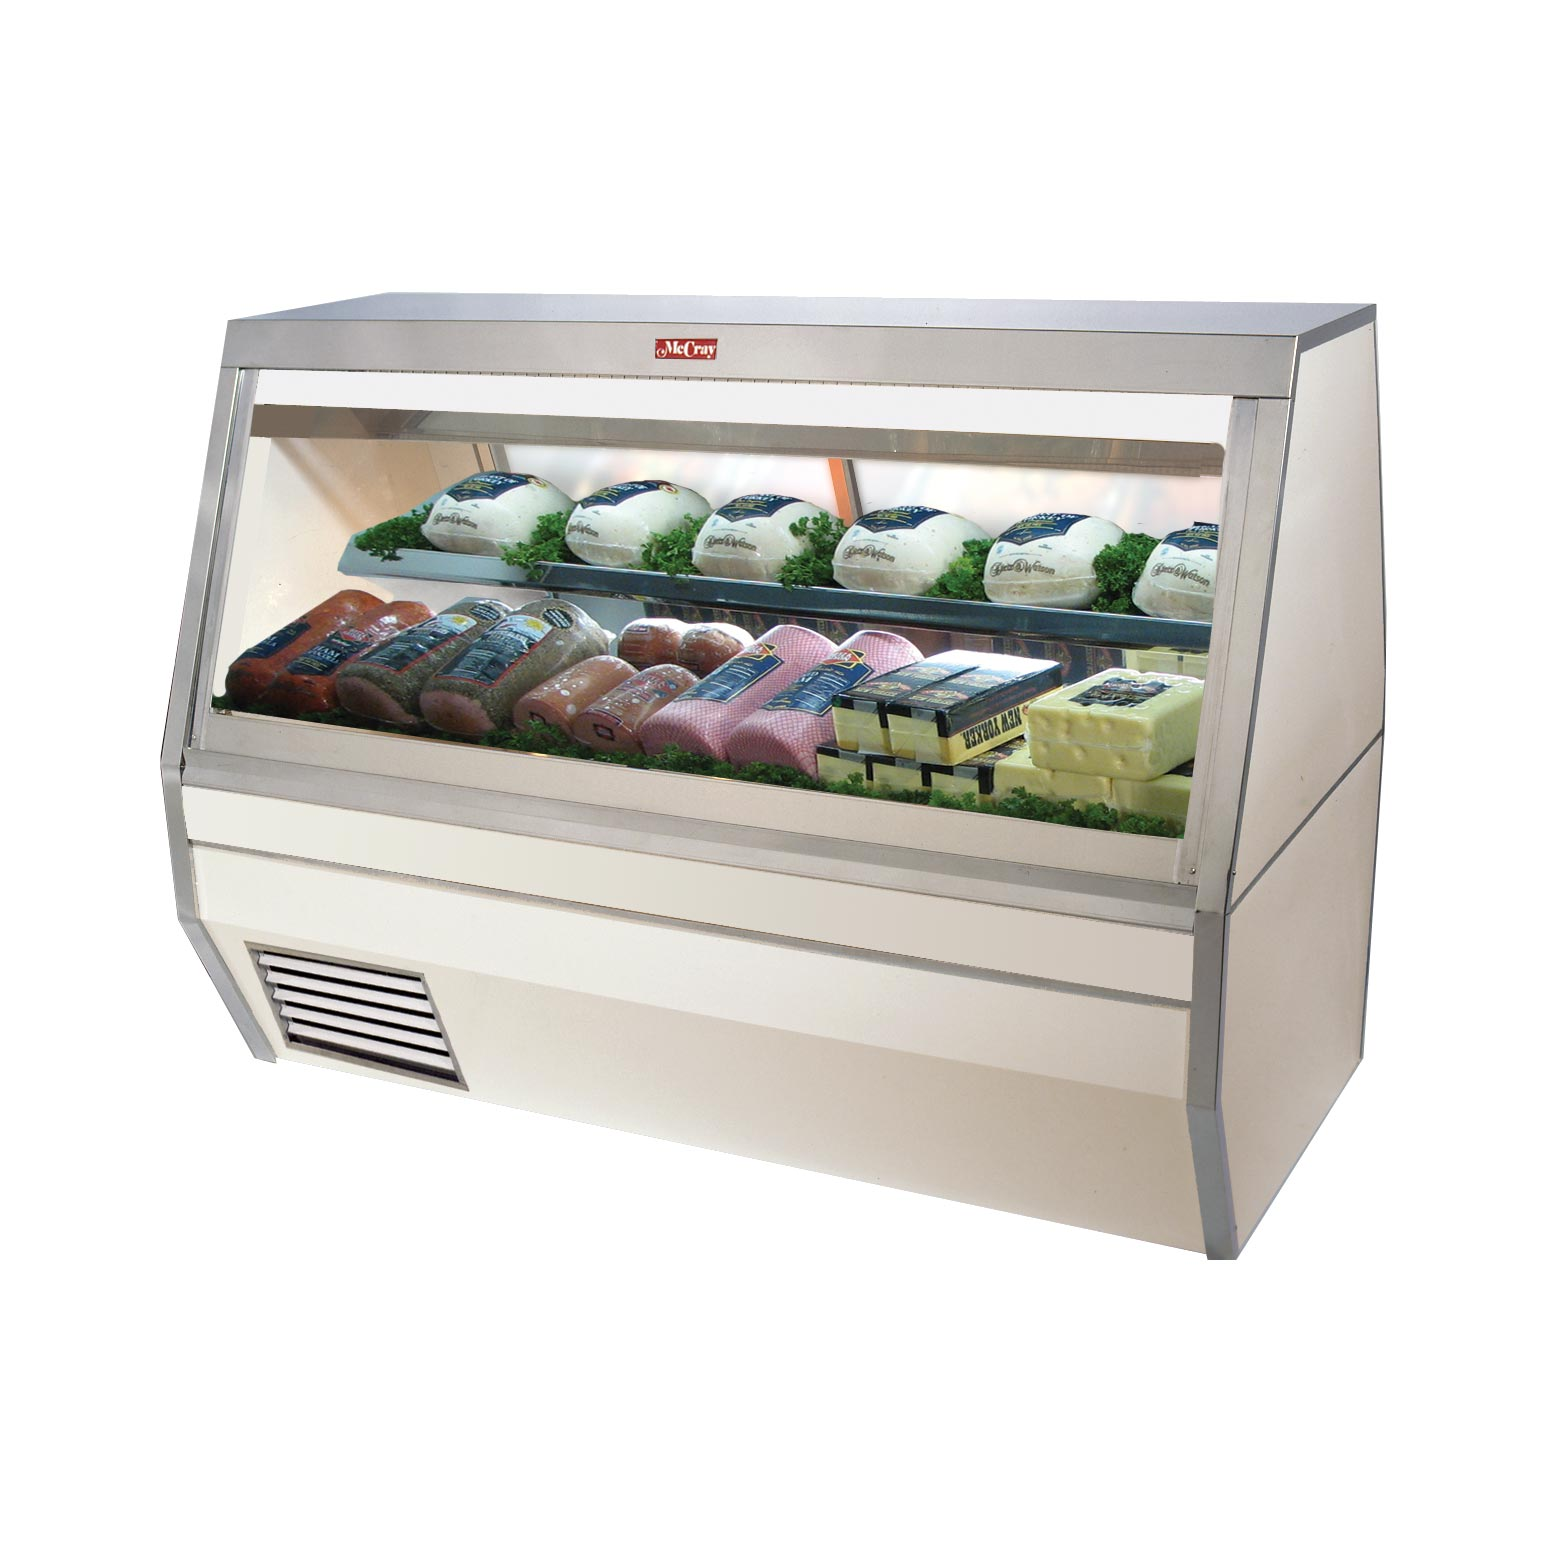 Howard-McCray R-CDS35-6-LED display case, refrigerated deli